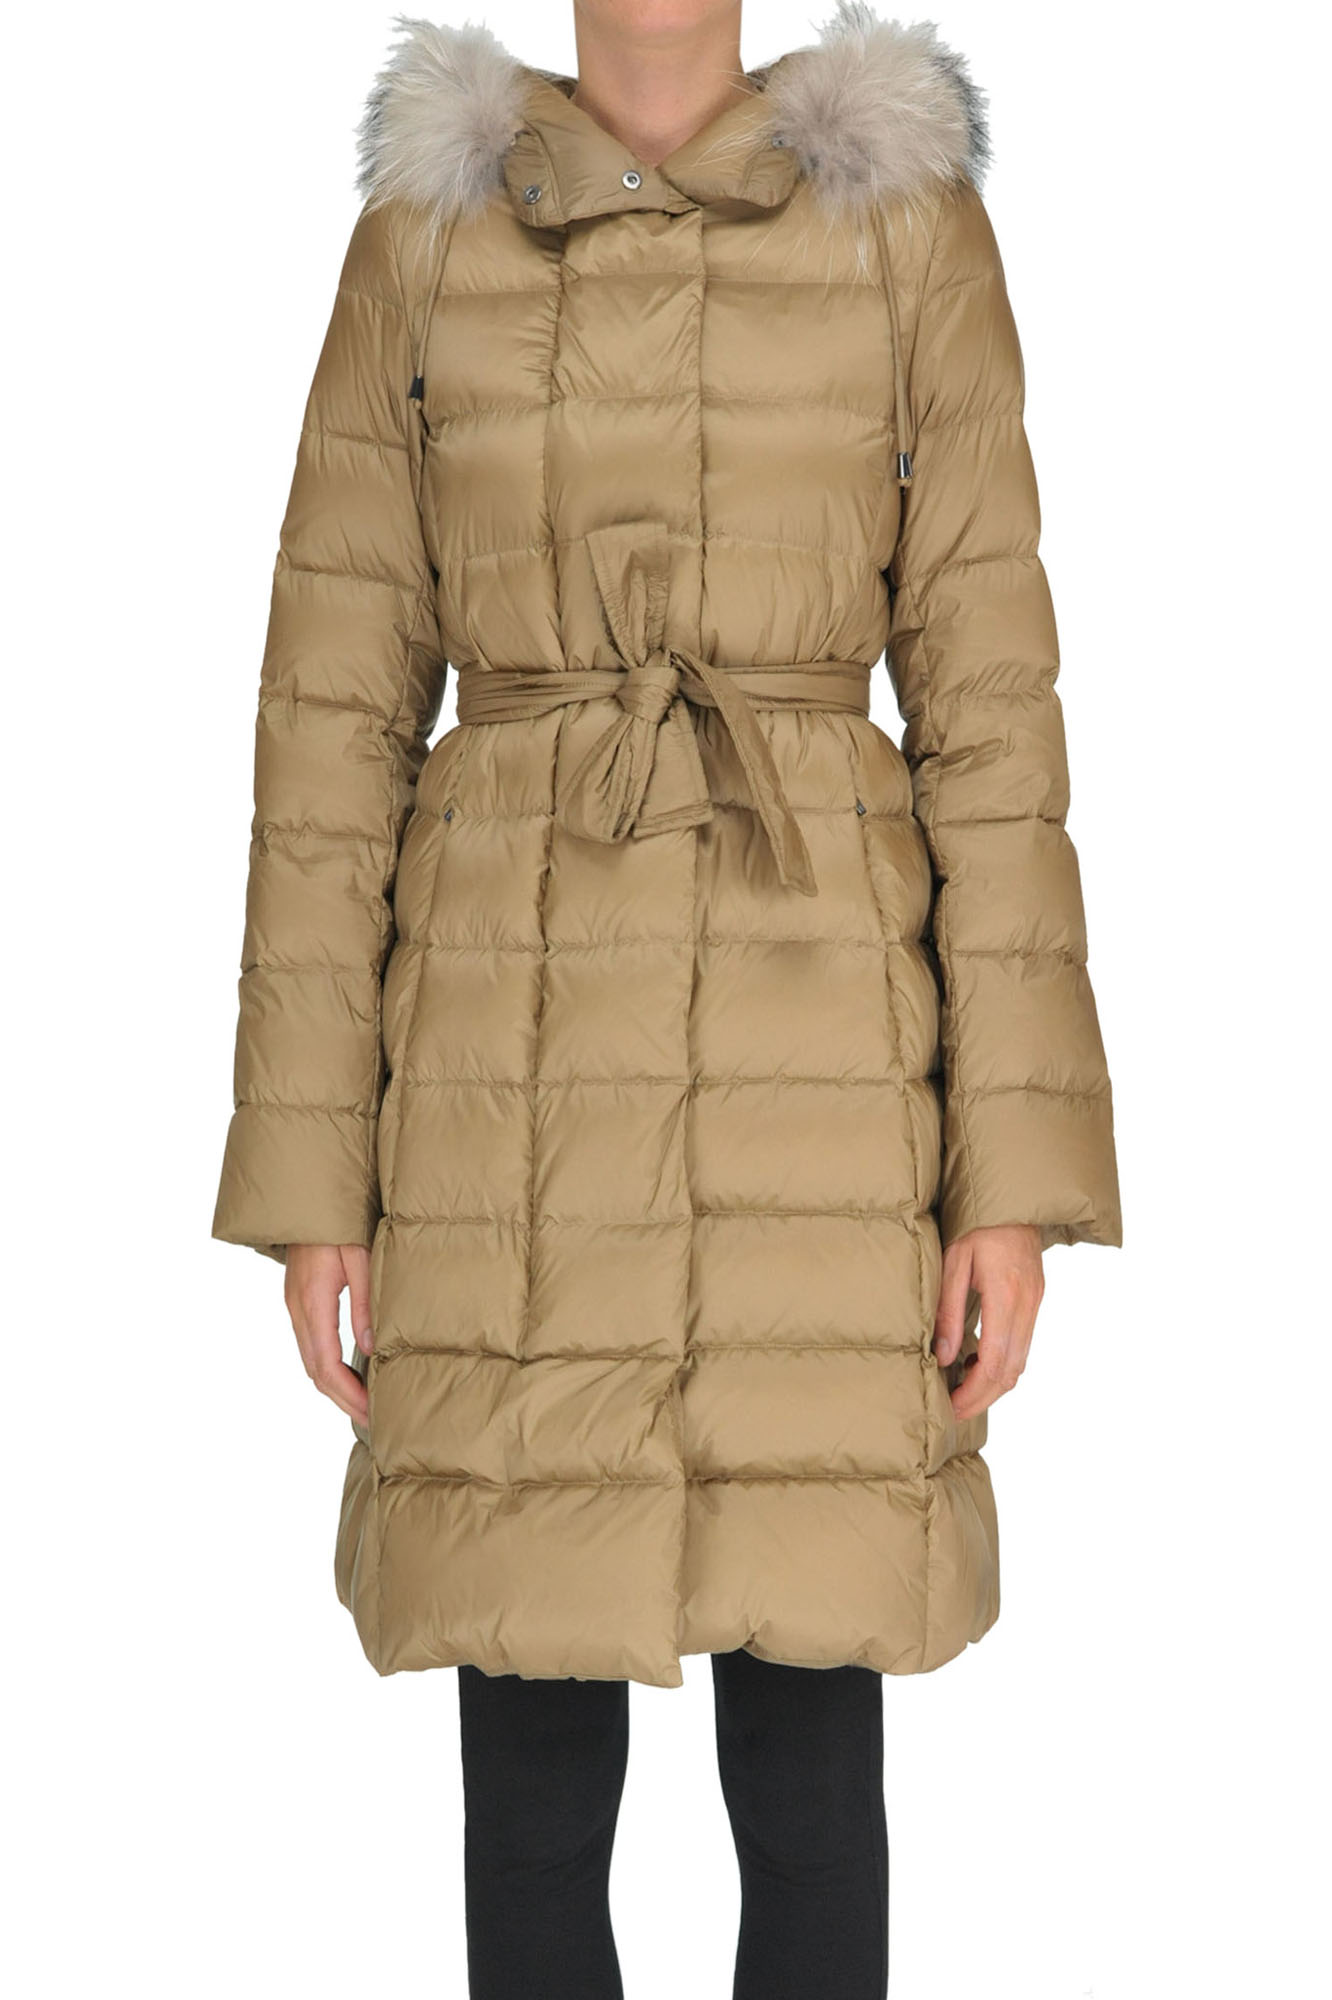 SEVENTY Quilted Down Jacket in Camel